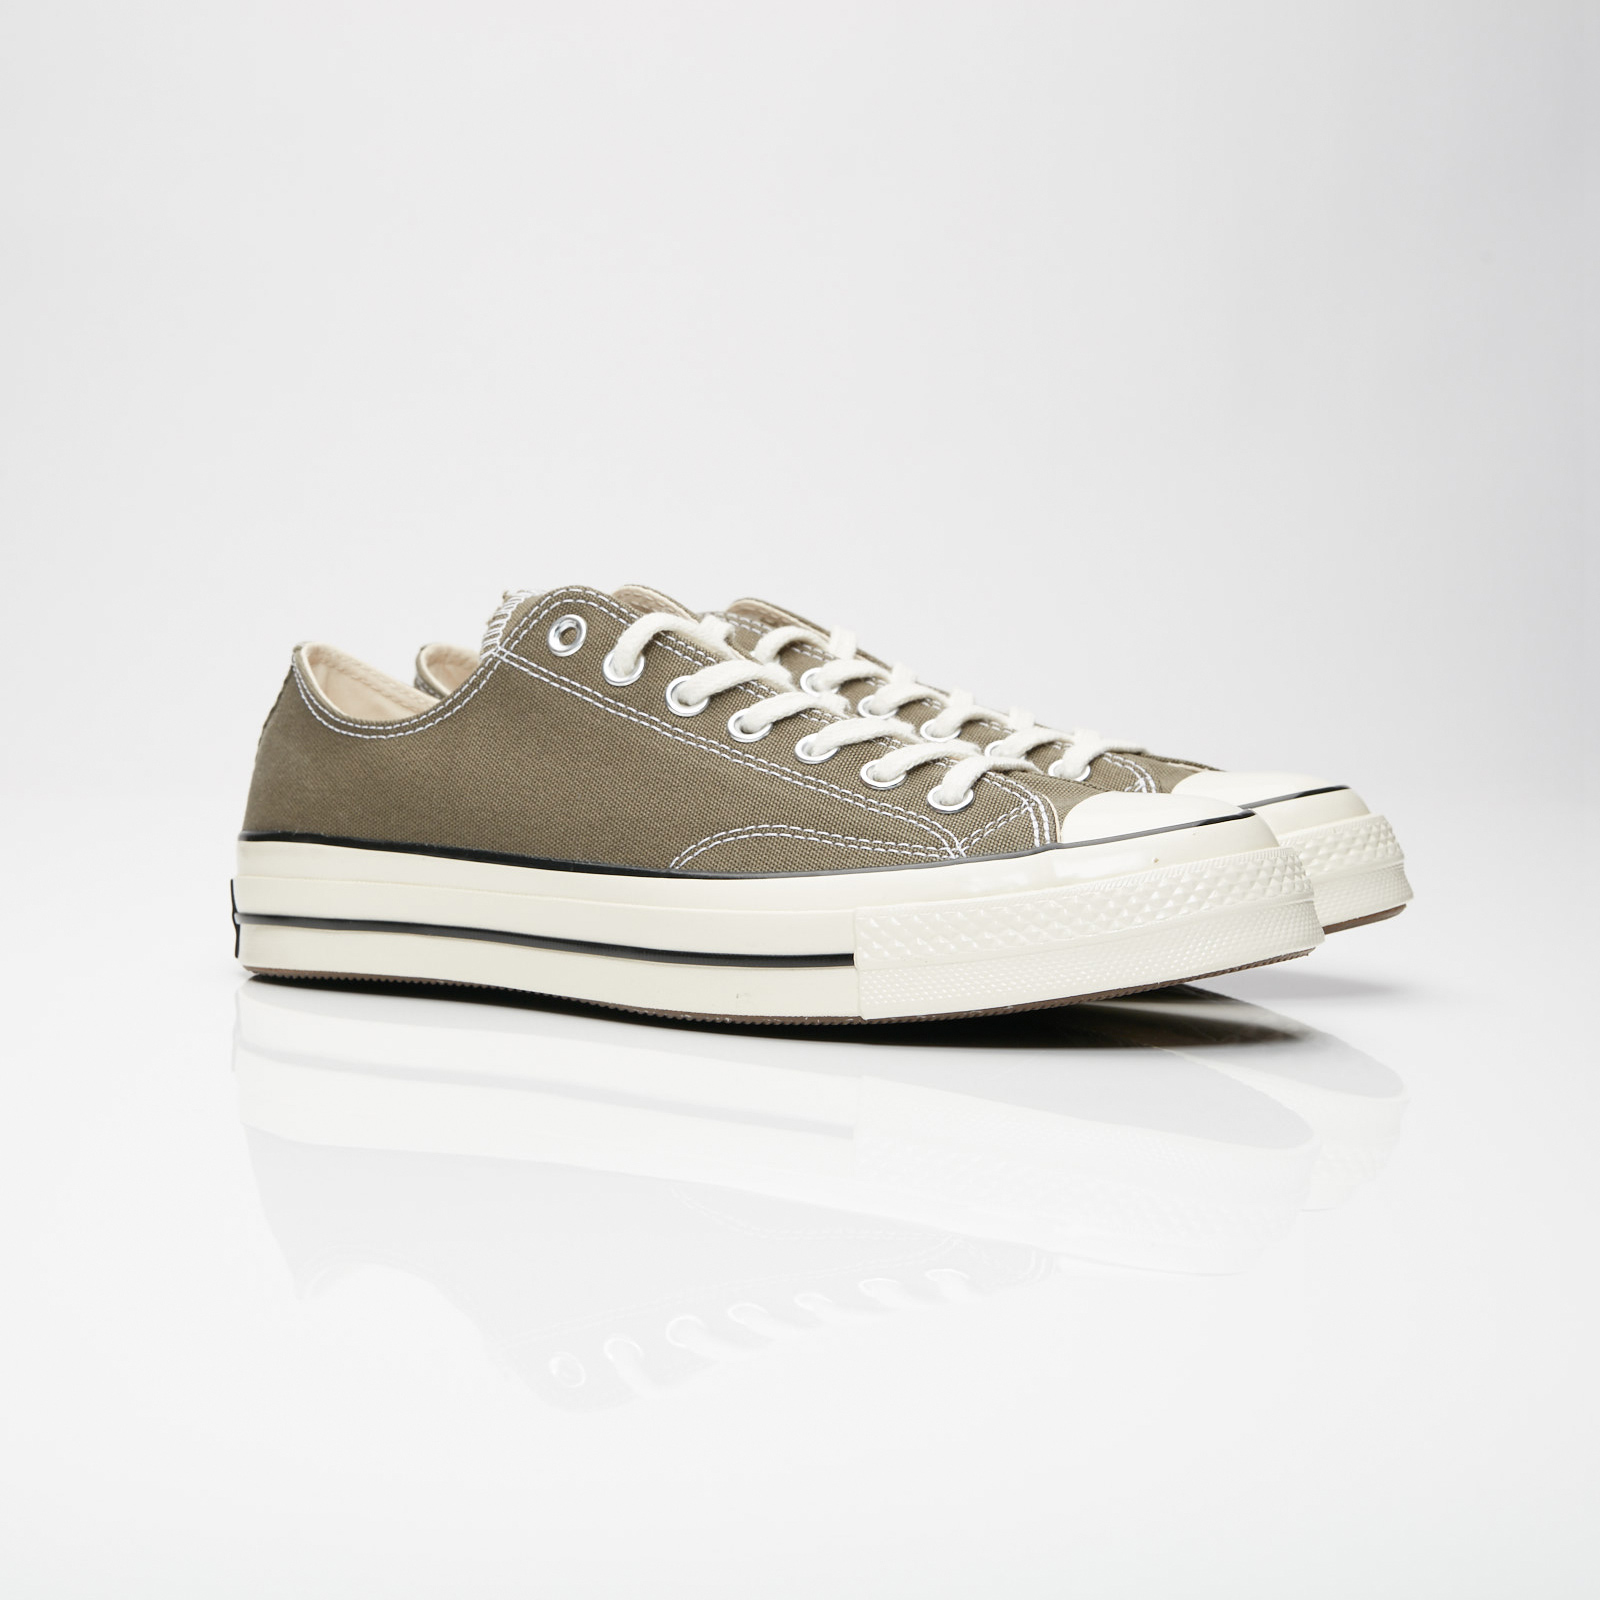 74940f254a2c38 Converse Chuck Taylor 70 - Ox - 162060c - Sneakersnstuff